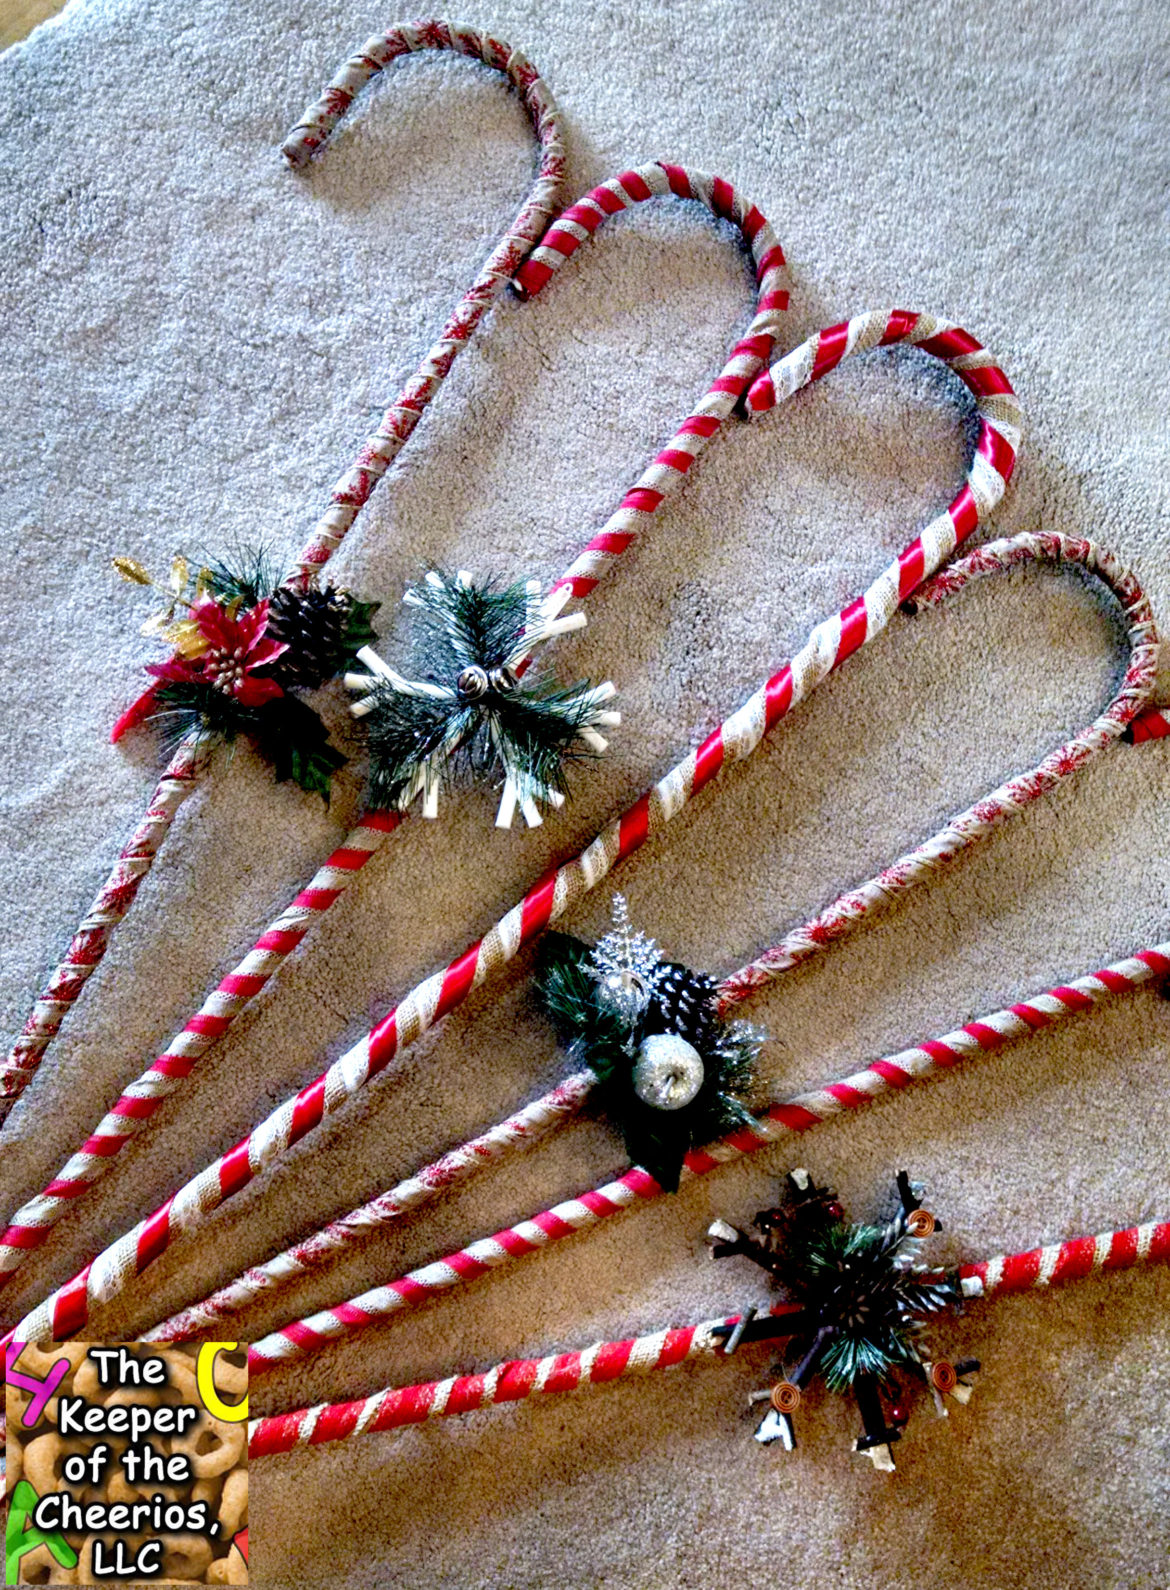 burlap-wrapped-candy-canes-8